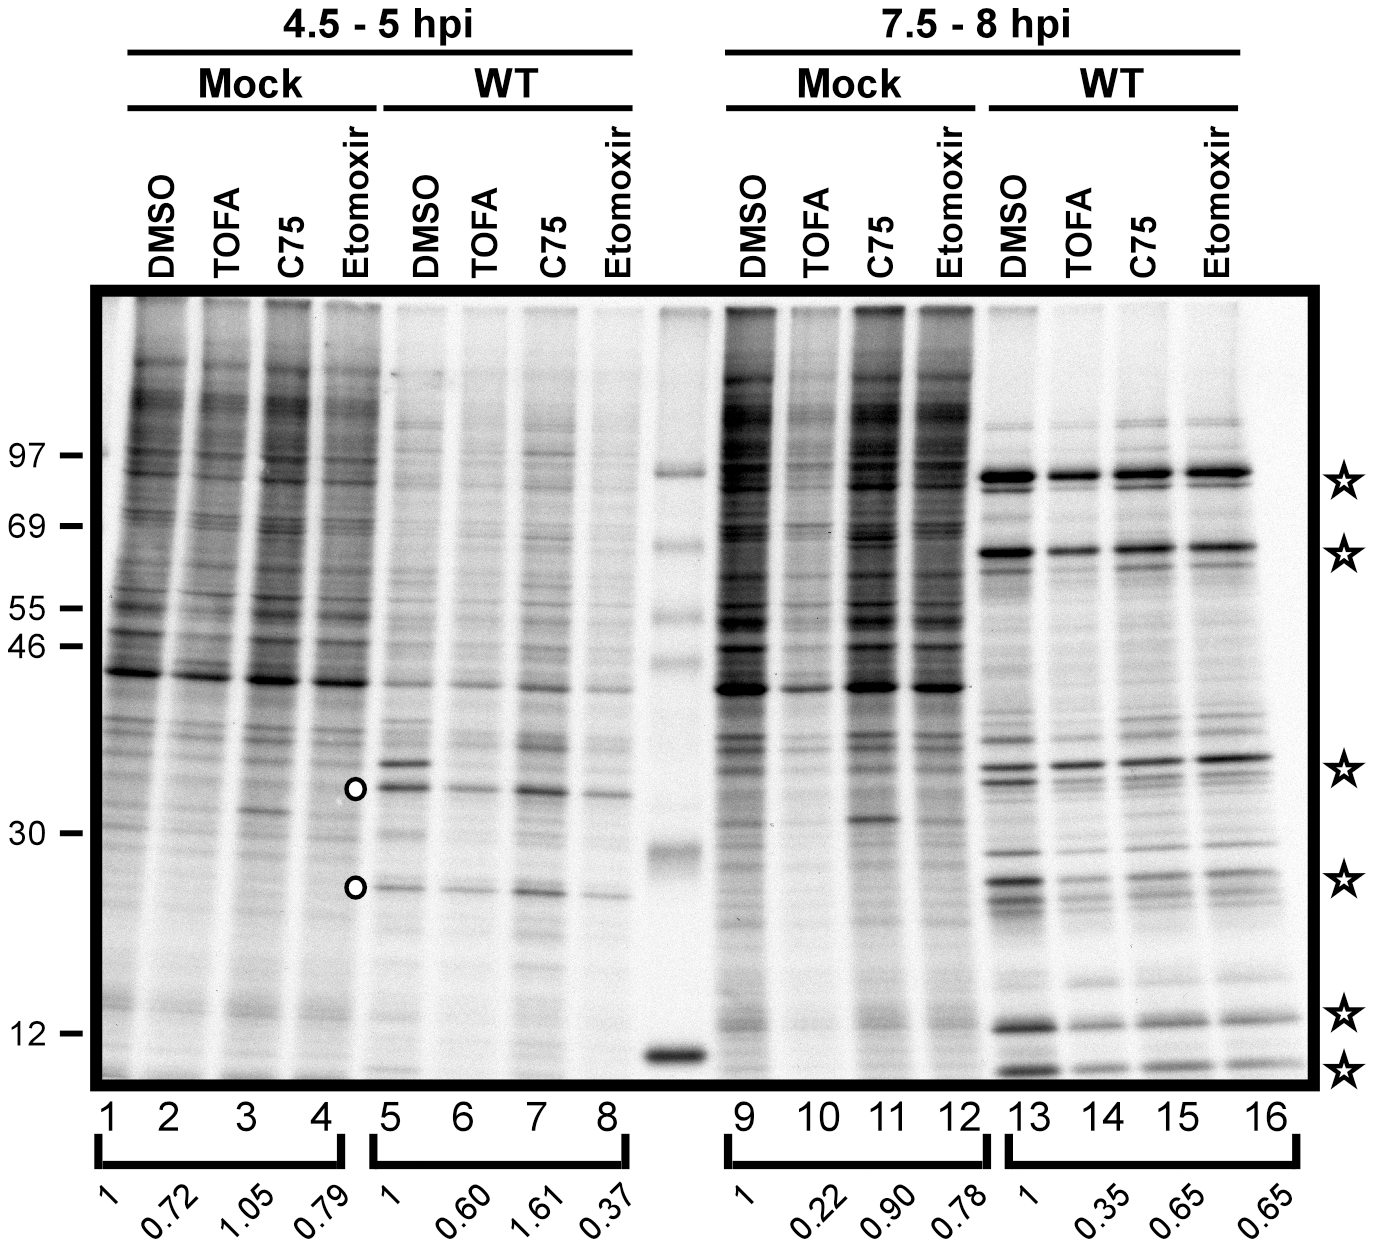 Viral protein synthesis is modestly reduced in the presence of TOFA, C75 and etomoxir.